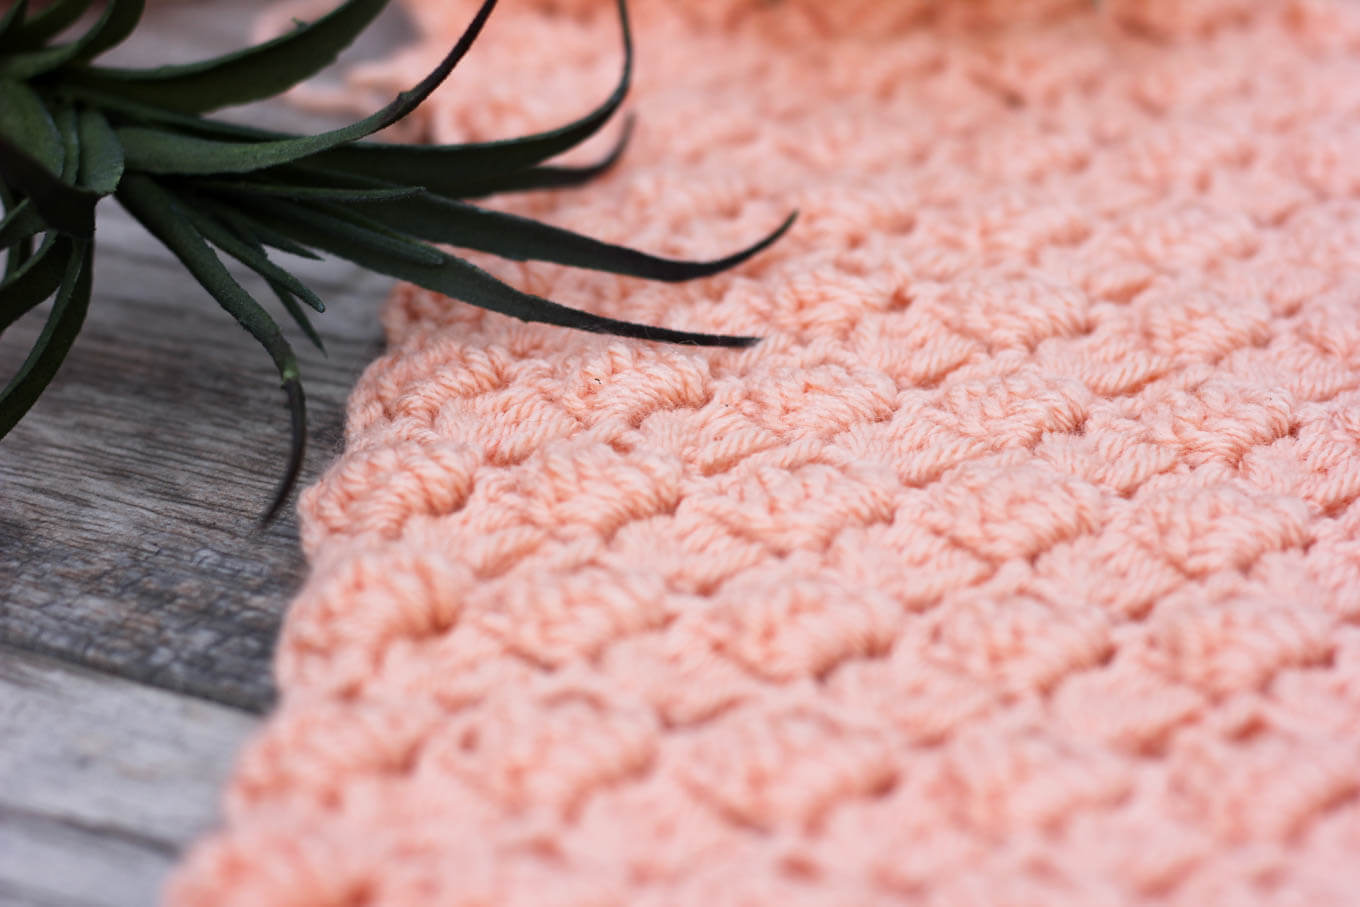 The side saddle crochet stitch has a lovely, repetitive look that is both airy and substantial at the same time. Check out this video tutorial to learn how to do it step-by-step!